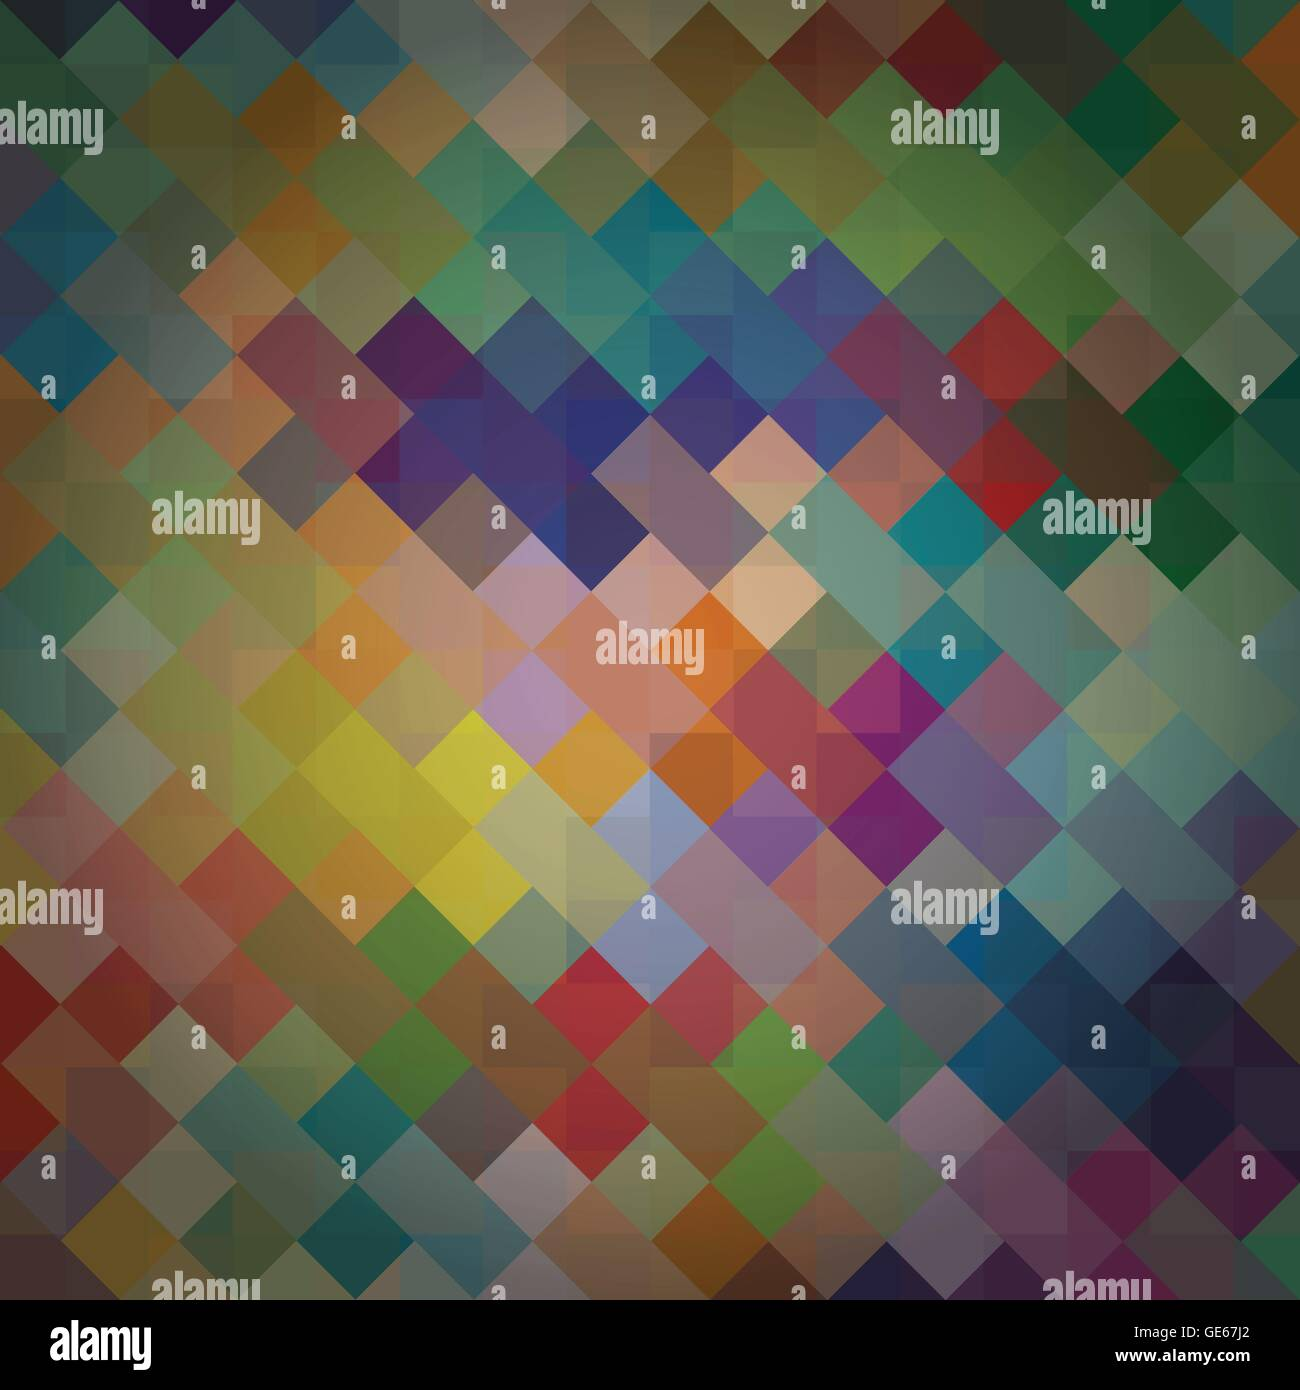 Knitted colorful abstract wool background illustration vector - Stock Vector